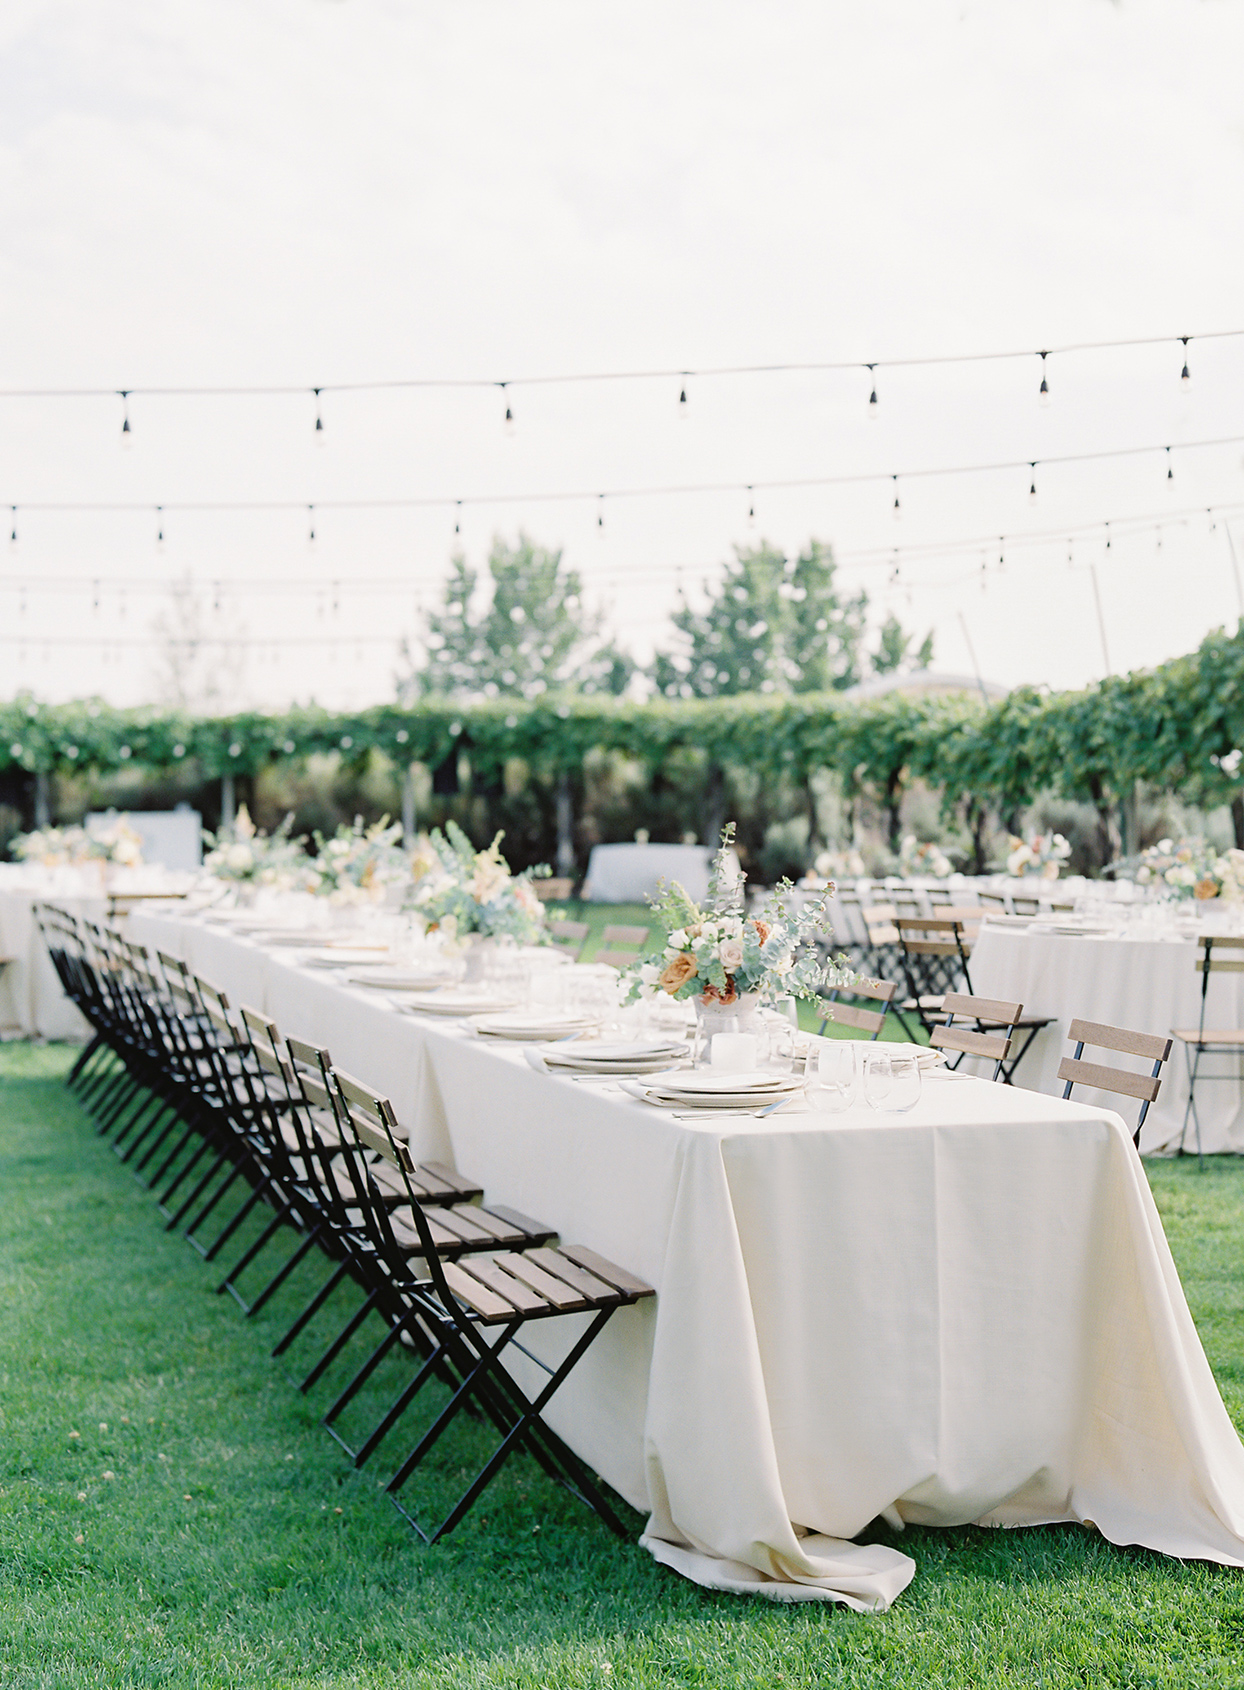 micaela curtis wedding reception long white table on lawn